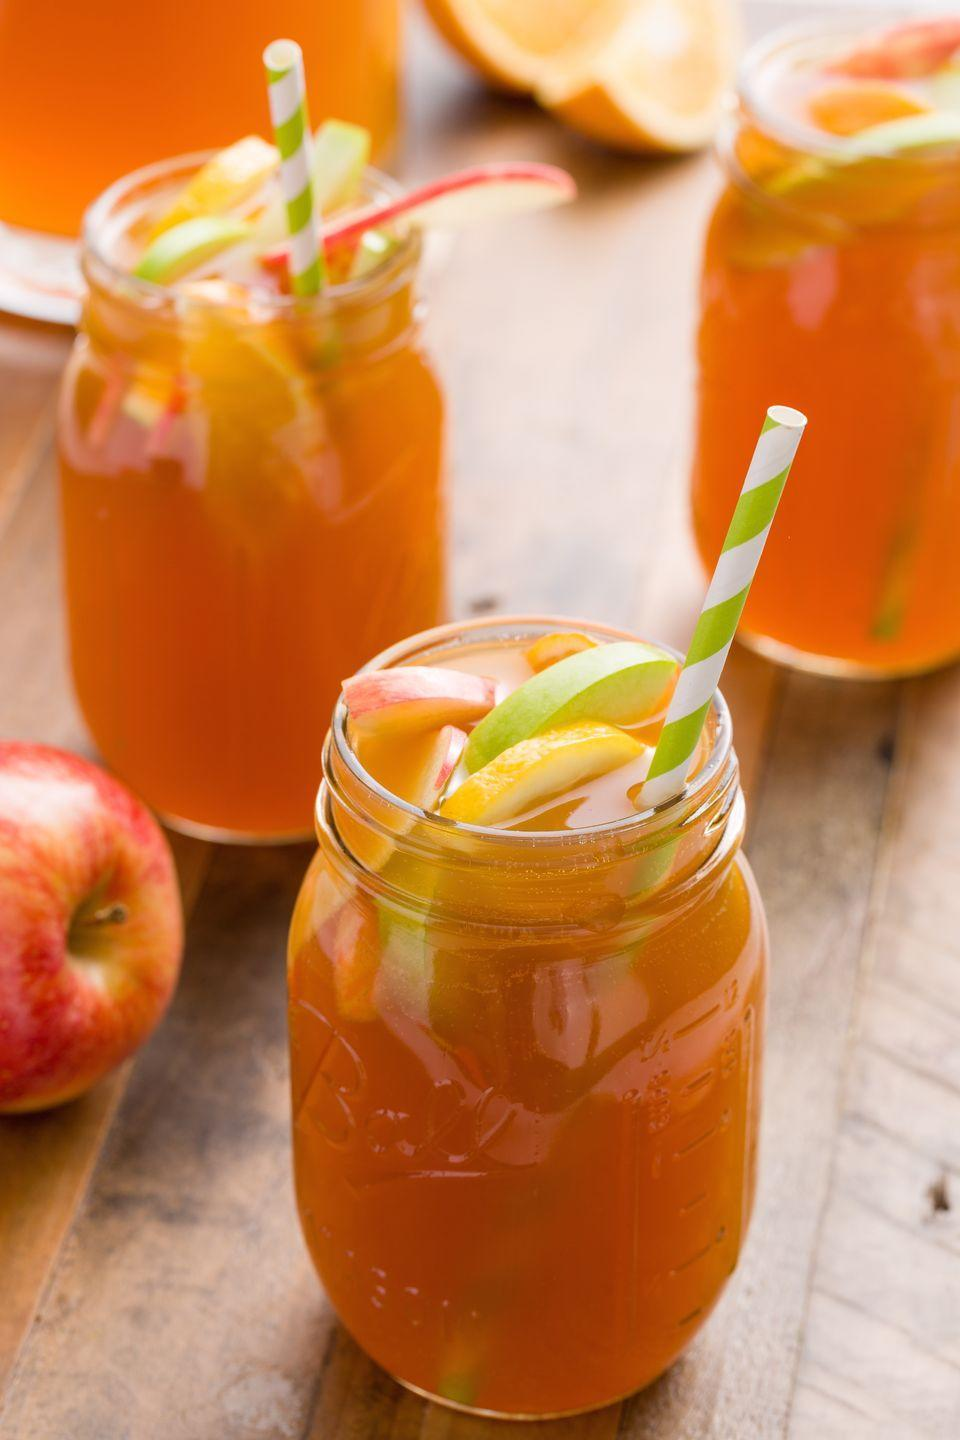 "<p>The party doesn't end just because summer has.</p><p>Get the recipe from <a href=""https://www.delish.com/entertaining/a43667/say-hello-to-fall-with-apple-cider-sangria/"" rel=""nofollow noopener"" target=""_blank"" data-ylk=""slk:Delish"" class=""link rapid-noclick-resp"">Delish</a>. </p>"